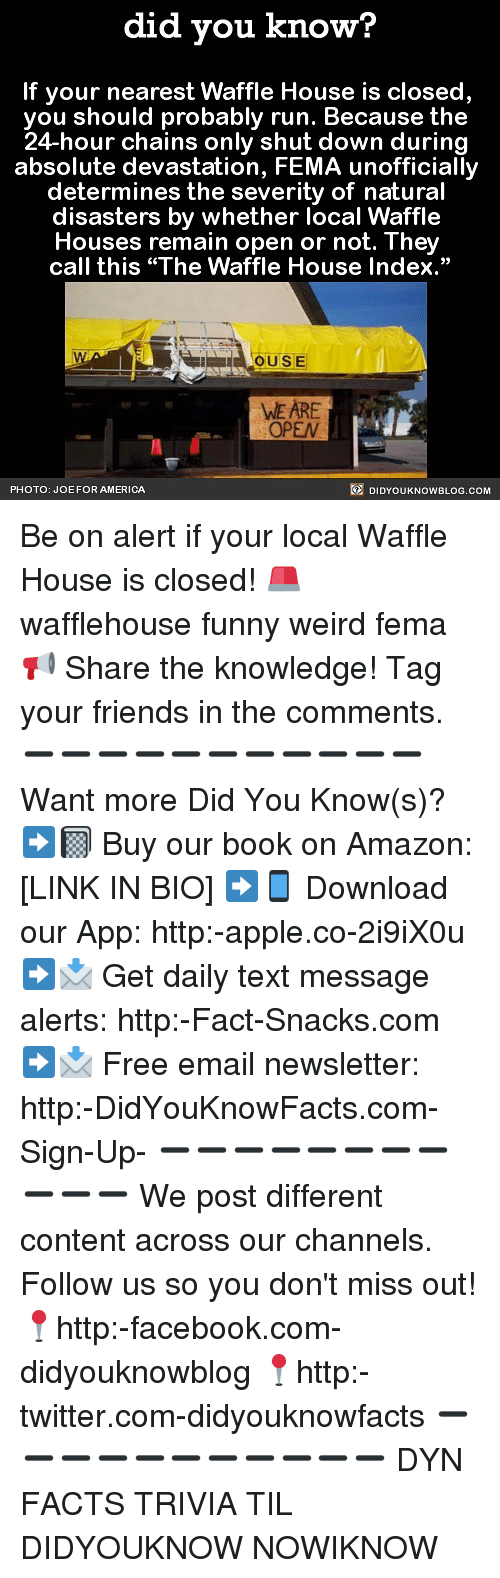 "Amazon, America, and Apple: did you know?  If your nearest Waffle House is closed  you should probably run. Because the  24-hour chains only shut down during  absolute devastation, FEMA unofficially  determines the severity of natural  disasters by whether local Waffle  Houses remain open or not. They  call this ""The Waffle House Index.""  OUSE  WE ARE  OPEN  PHOTO: JOE FOR AMERICA  DIDYOUKNOWBLOG.COM Be on alert if your local Waffle House is closed! 🚨 wafflehouse funny weird fema 📢 Share the knowledge! Tag your friends in the comments. ➖➖➖➖➖➖➖➖➖➖➖ Want more Did You Know(s)? ➡📓 Buy our book on Amazon: [LINK IN BIO] ➡📱 Download our App: http:-apple.co-2i9iX0u ➡📩 Get daily text message alerts: http:-Fact-Snacks.com ➡📩 Free email newsletter: http:-DidYouKnowFacts.com-Sign-Up- ➖➖➖➖➖➖➖➖➖➖➖ We post different content across our channels. Follow us so you don't miss out! 📍http:-facebook.com-didyouknowblog 📍http:-twitter.com-didyouknowfacts ➖➖➖➖➖➖➖➖➖➖➖ DYN FACTS TRIVIA TIL DIDYOUKNOW NOWIKNOW"